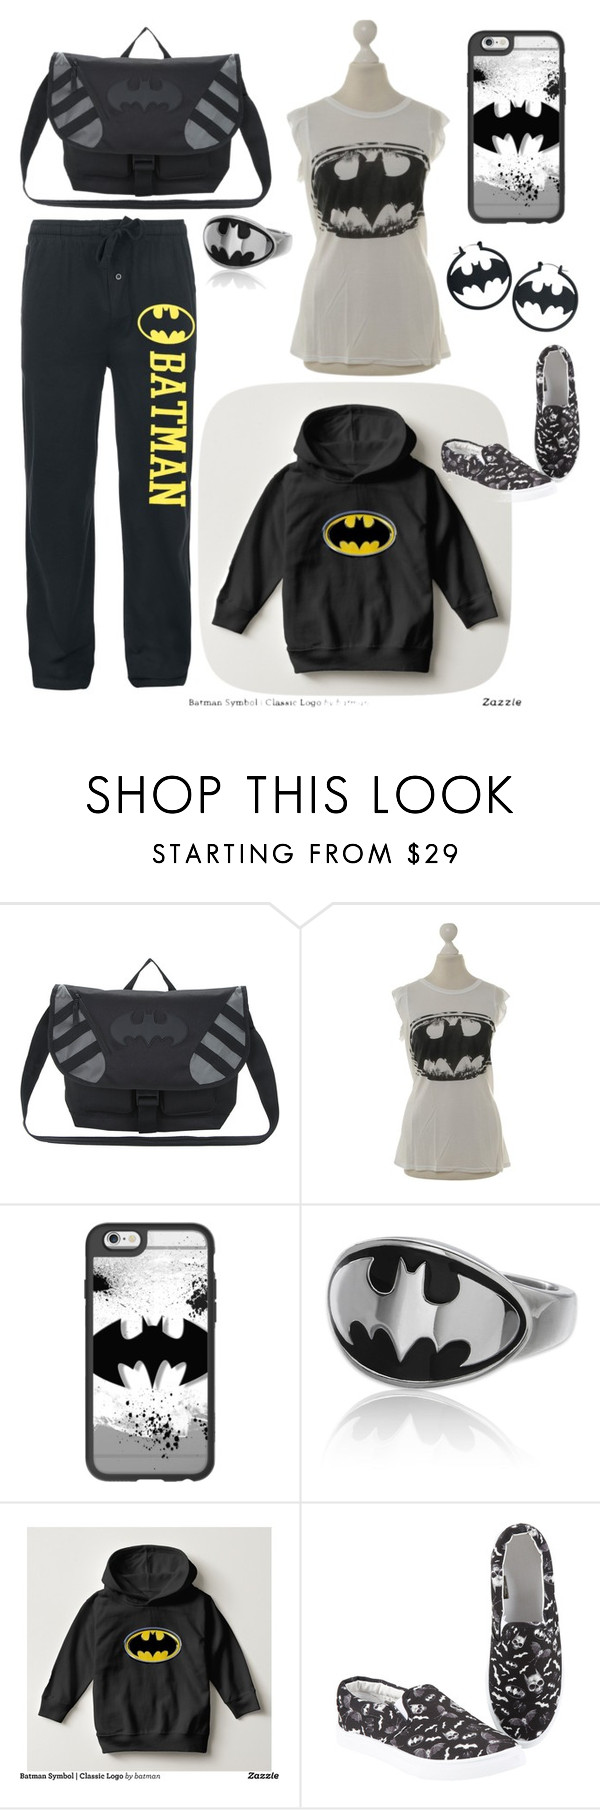 """""""Fandom-DC Comics-Batman"""" by maile-estacion ❤ liked on Polyvore featuring LAUREN MOSHI and Casetify"""